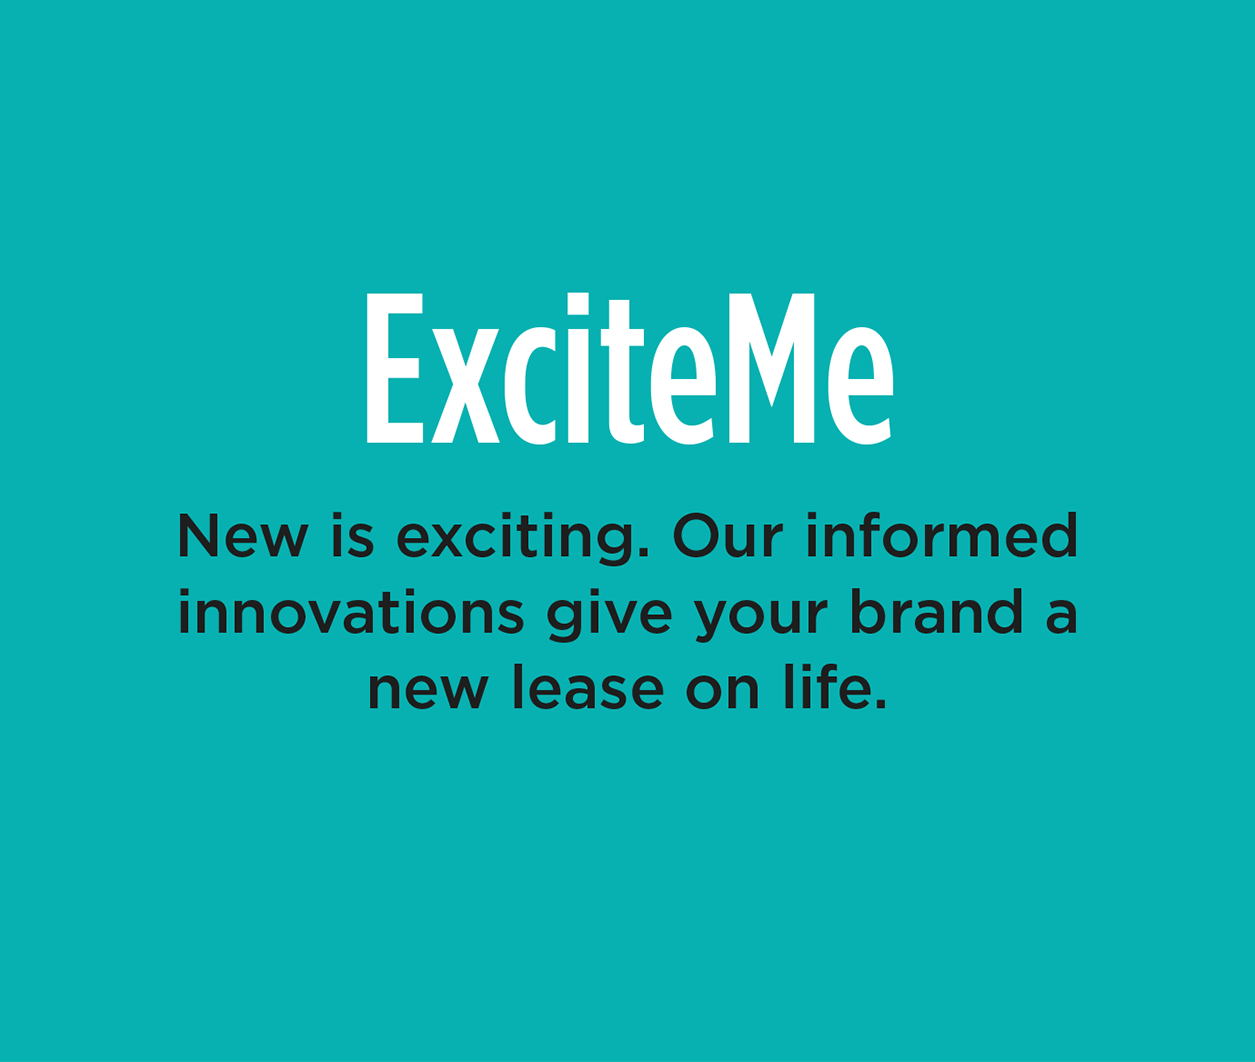 ExciteMe - New is exciting. Our informed innovations give your brand a new lease on life.